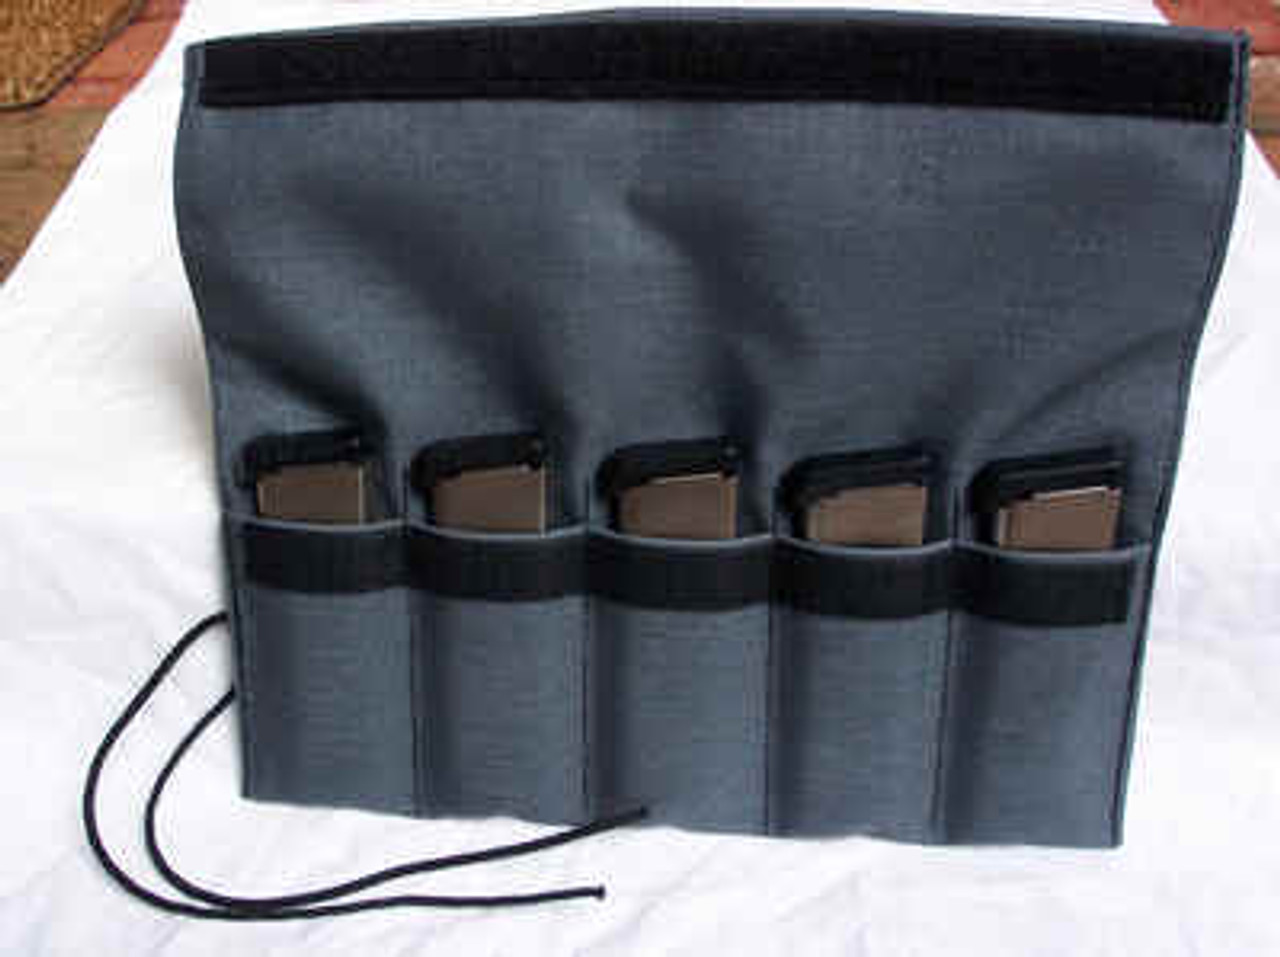 MAG-BAG MAGAZINE POUCH